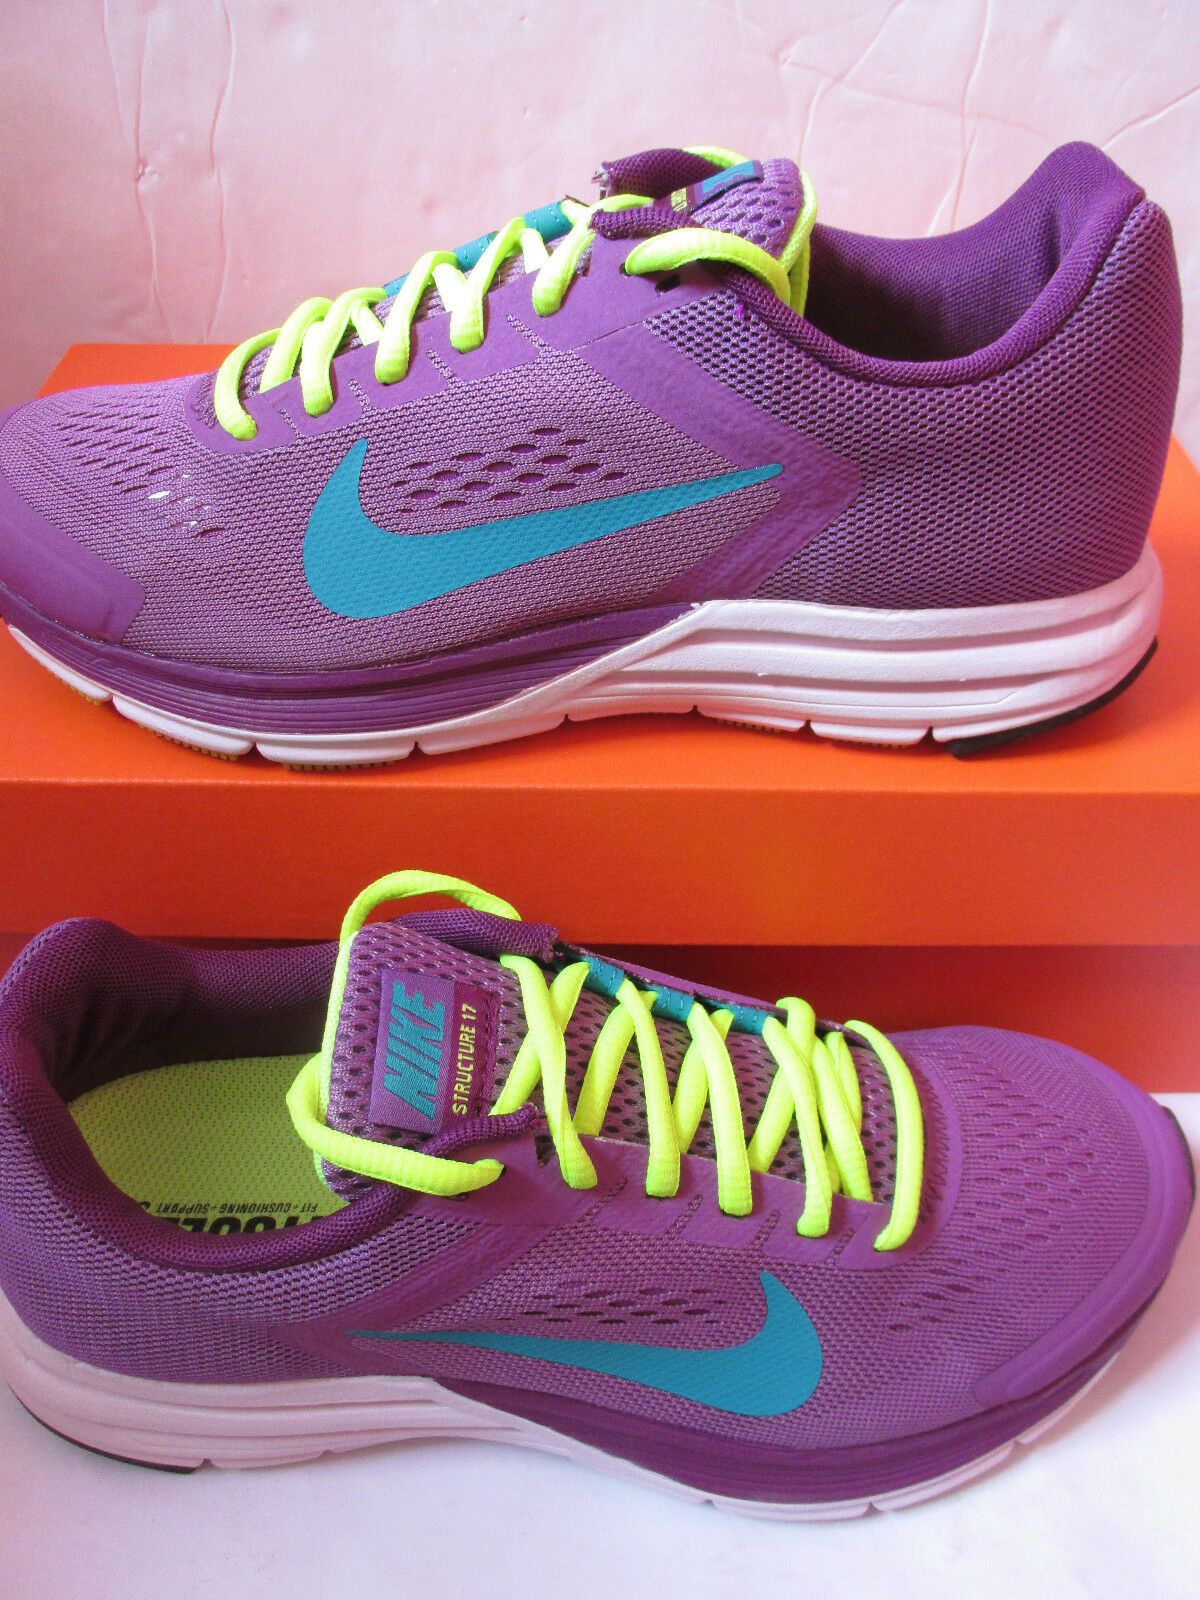 Nike Femmes Zoom Structure + 17 Basket Course 615588 535 Baskets